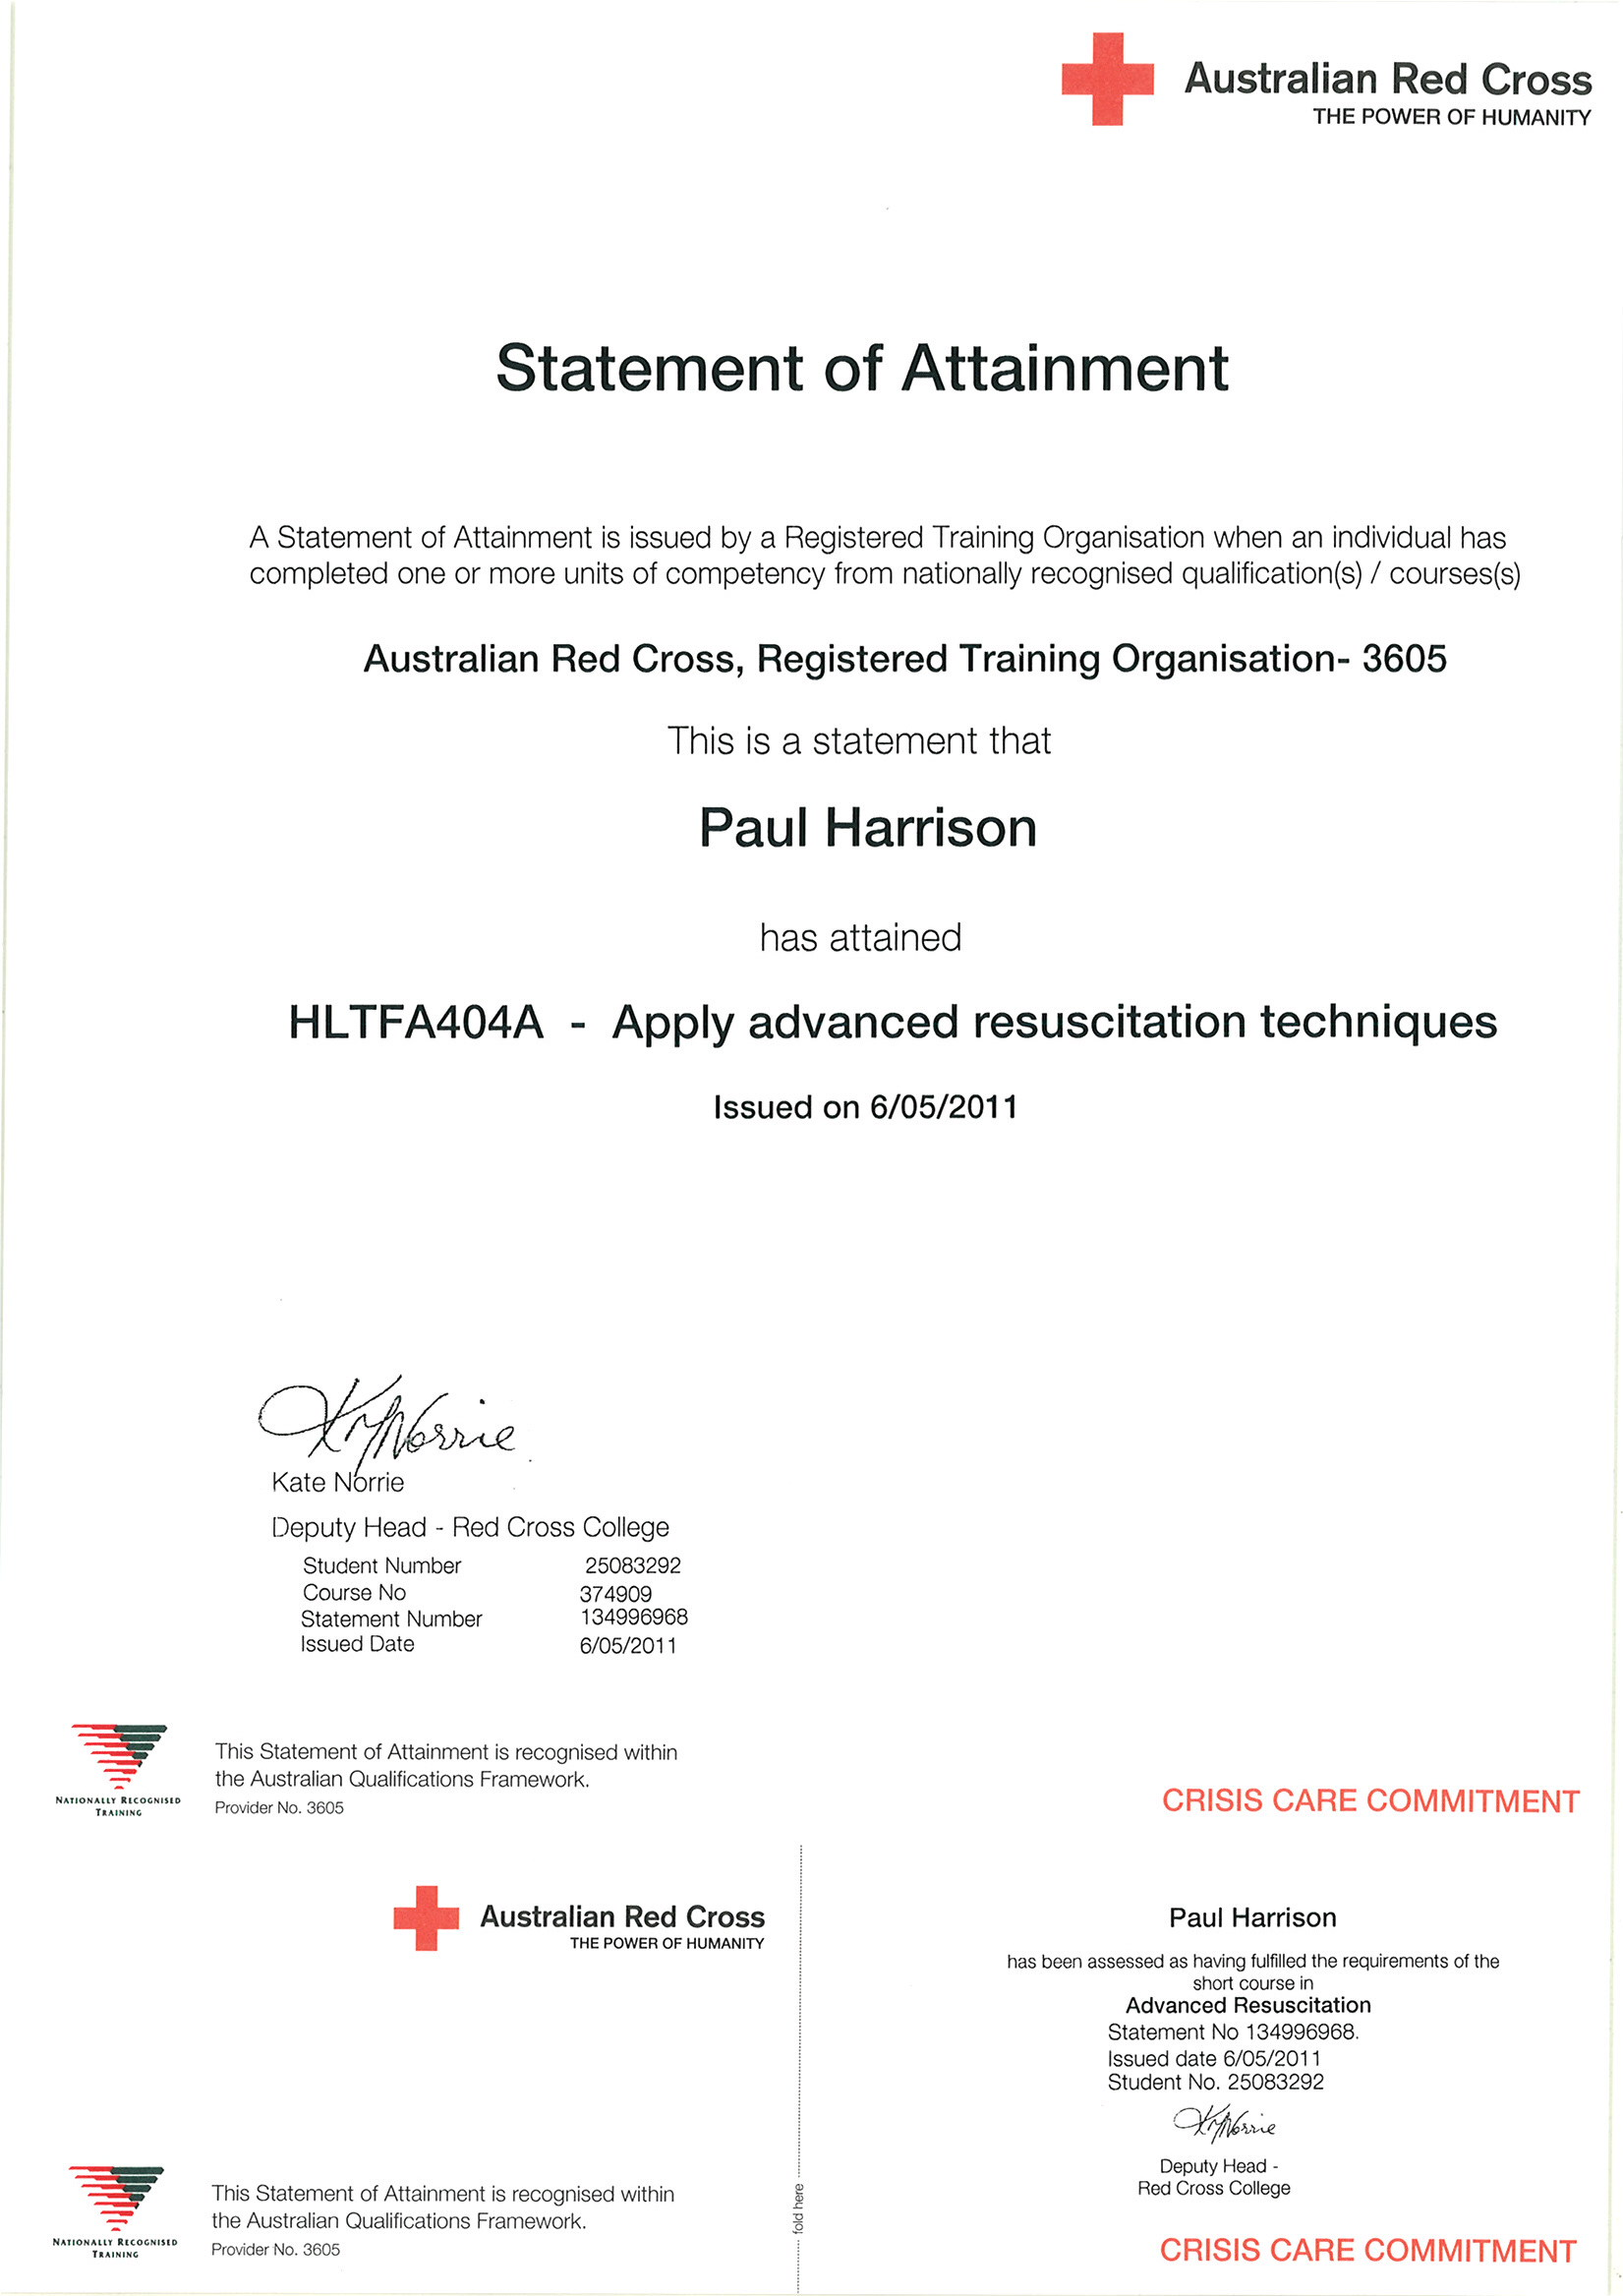 Redcross Cert of Accred ADRES (2016_03_30 02_20_32 UTC)